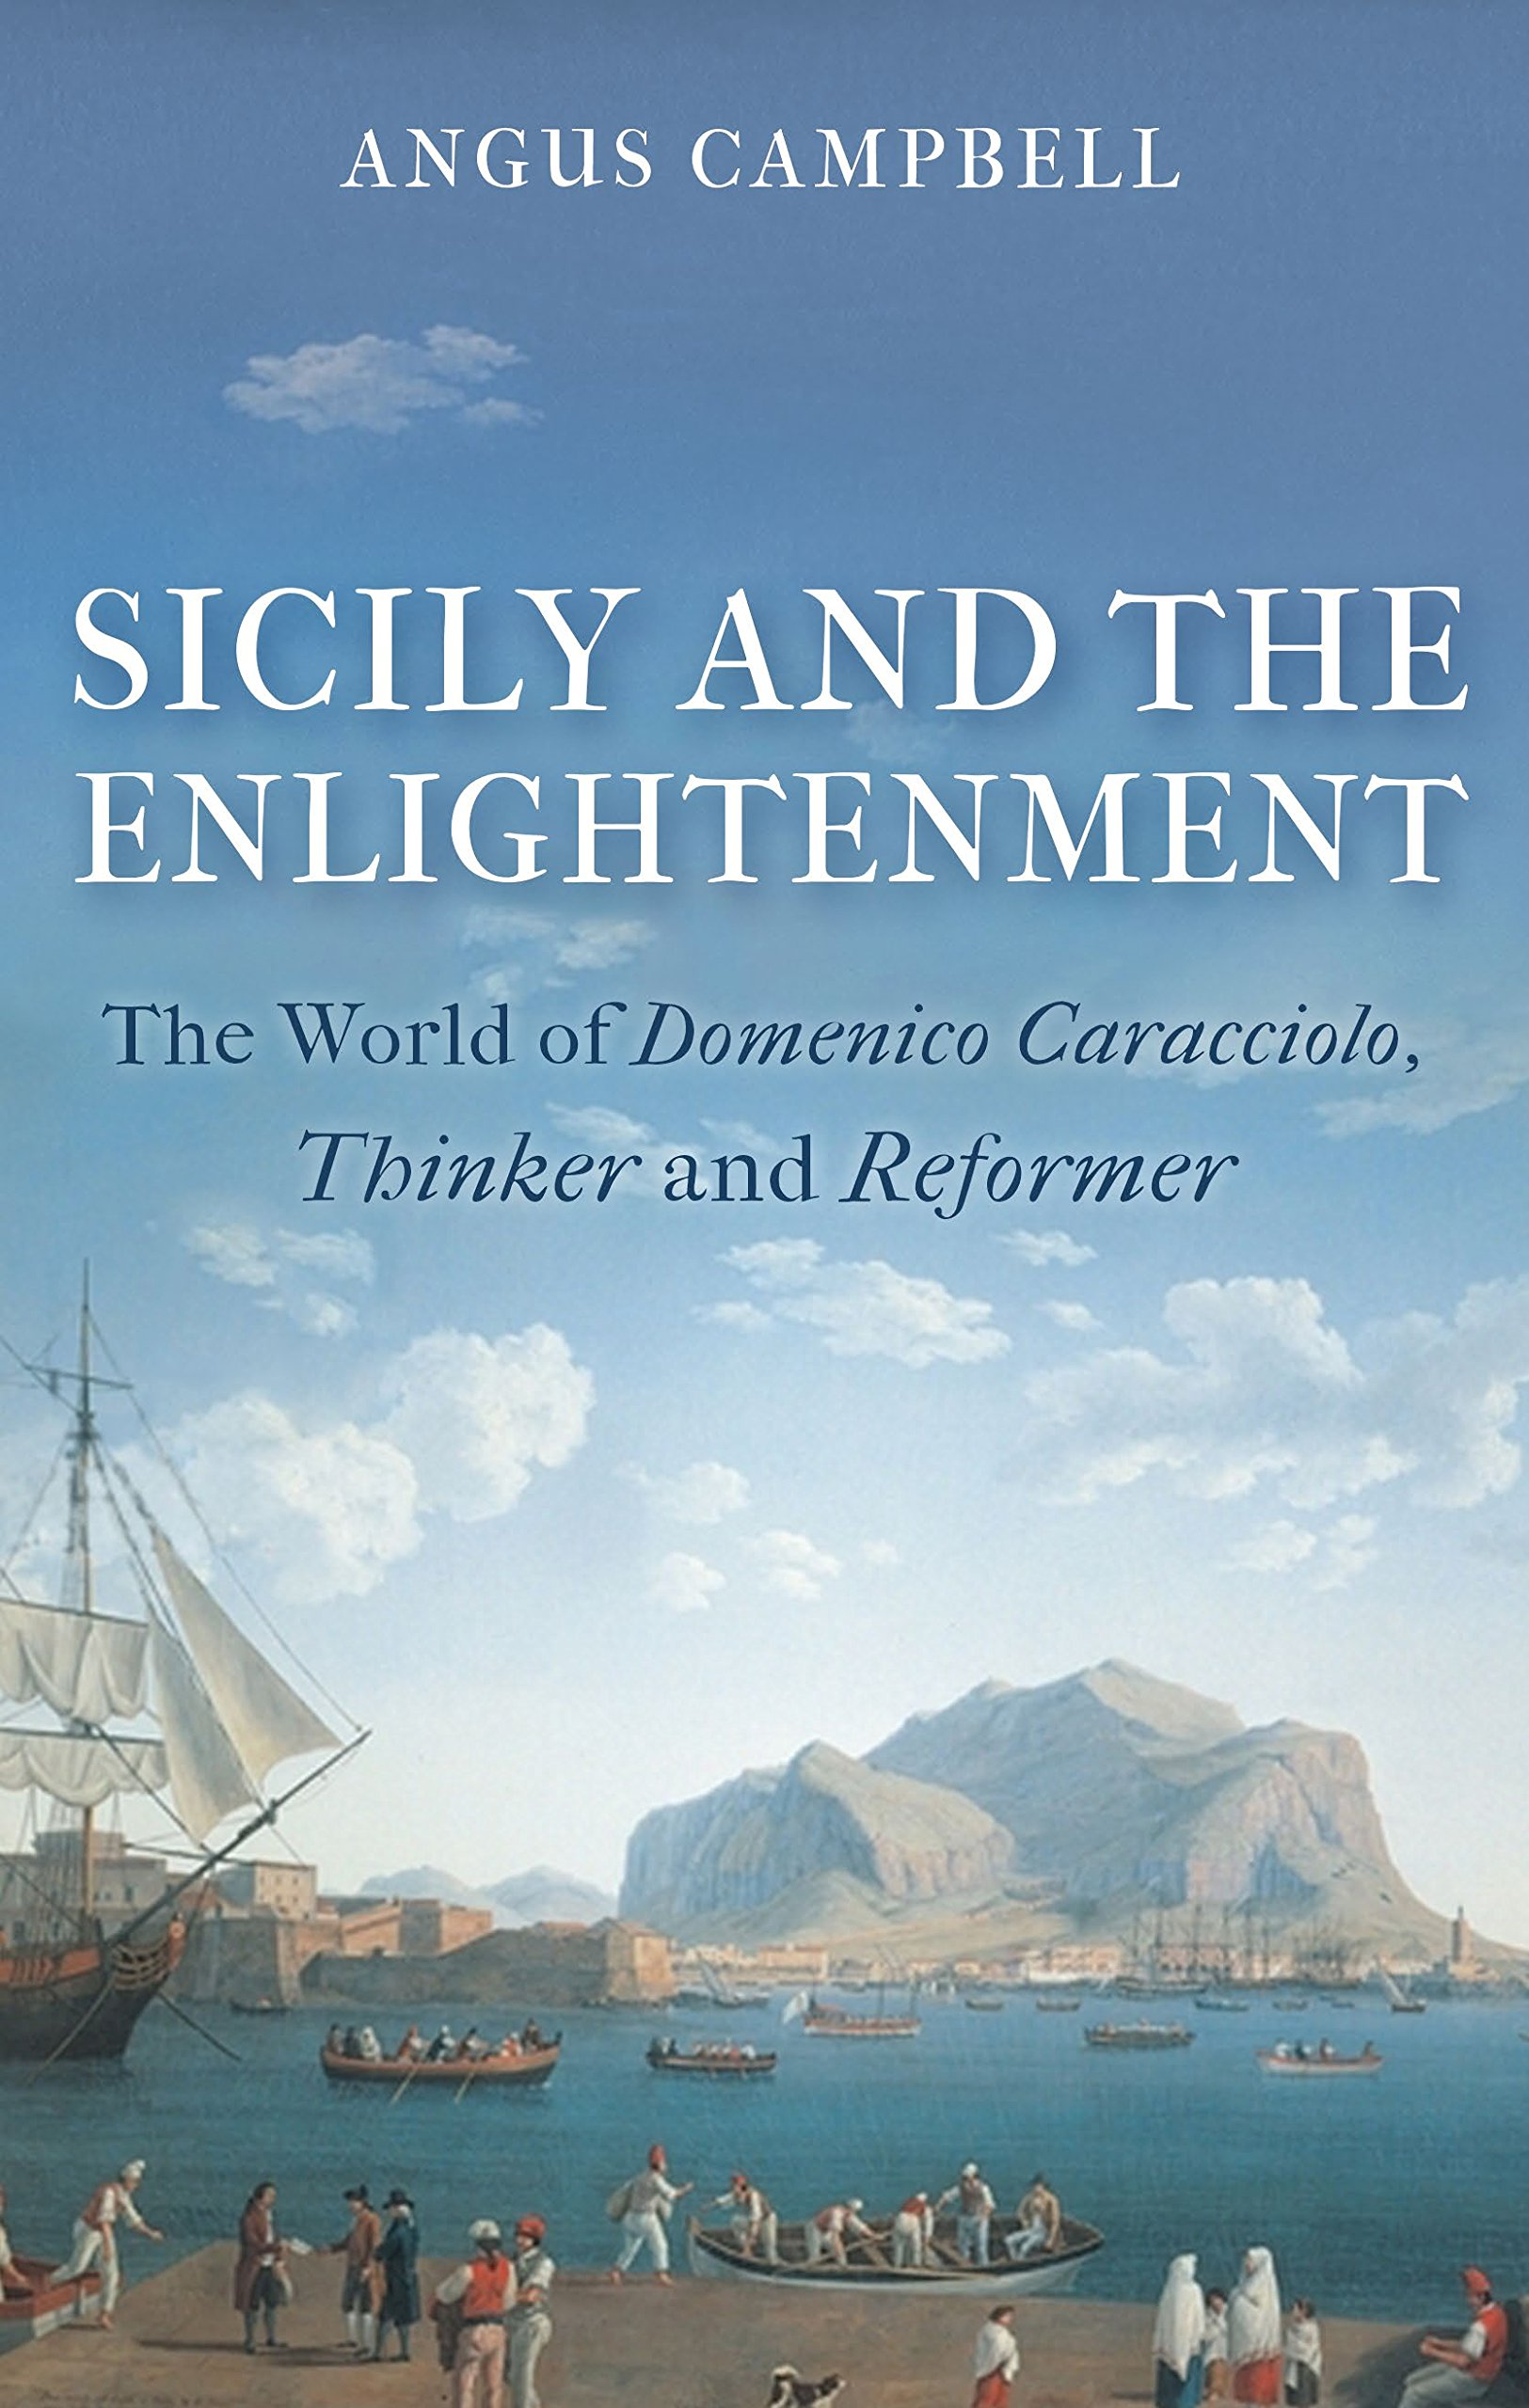 Download Sicily and the Enlightenment: The World of Domenico Caracciolo, Thinker and Reformer pdf